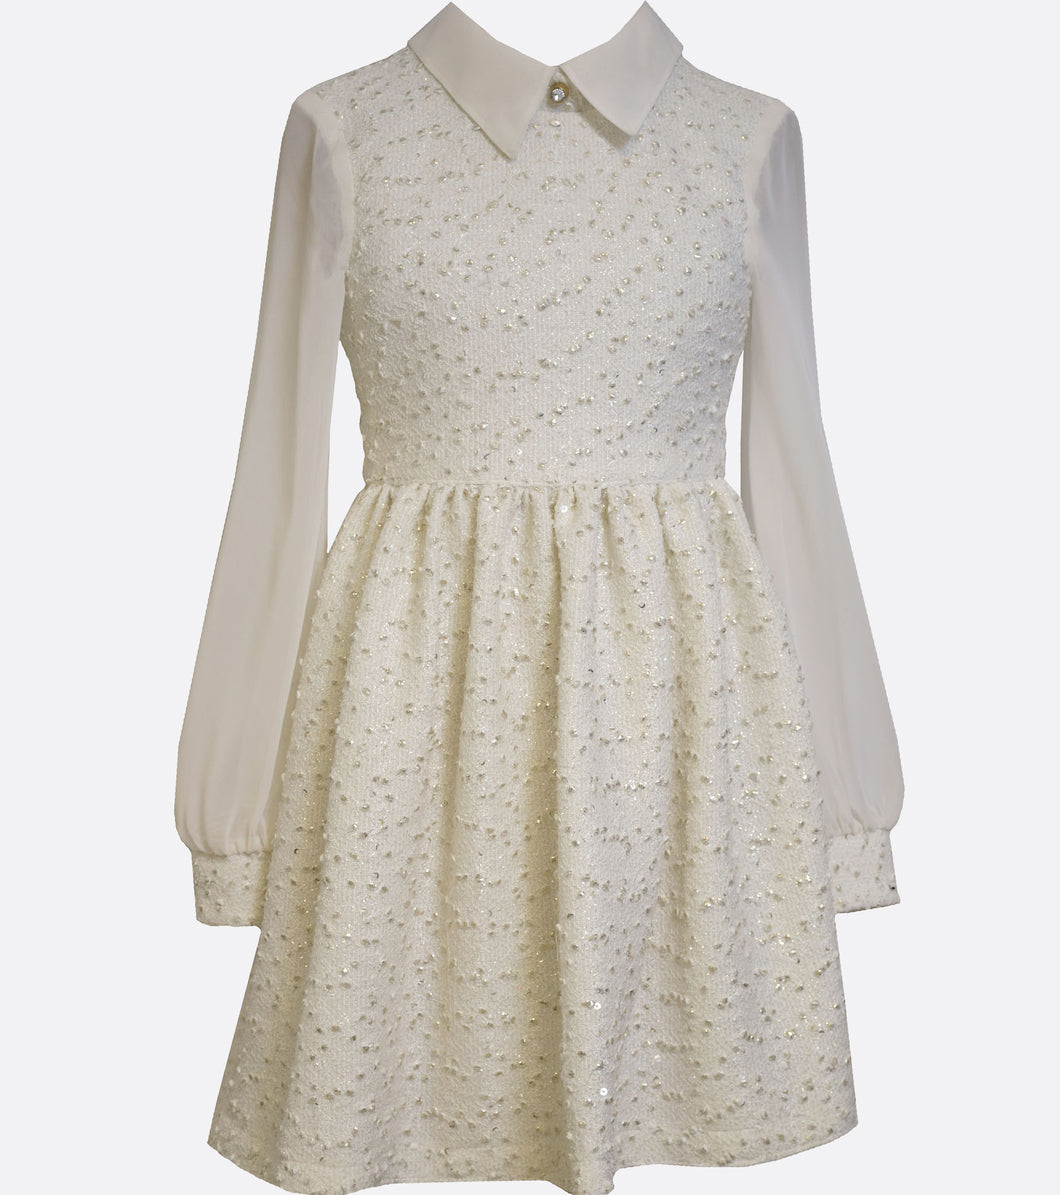 Bonnie jean gold and ivory collared winter dress